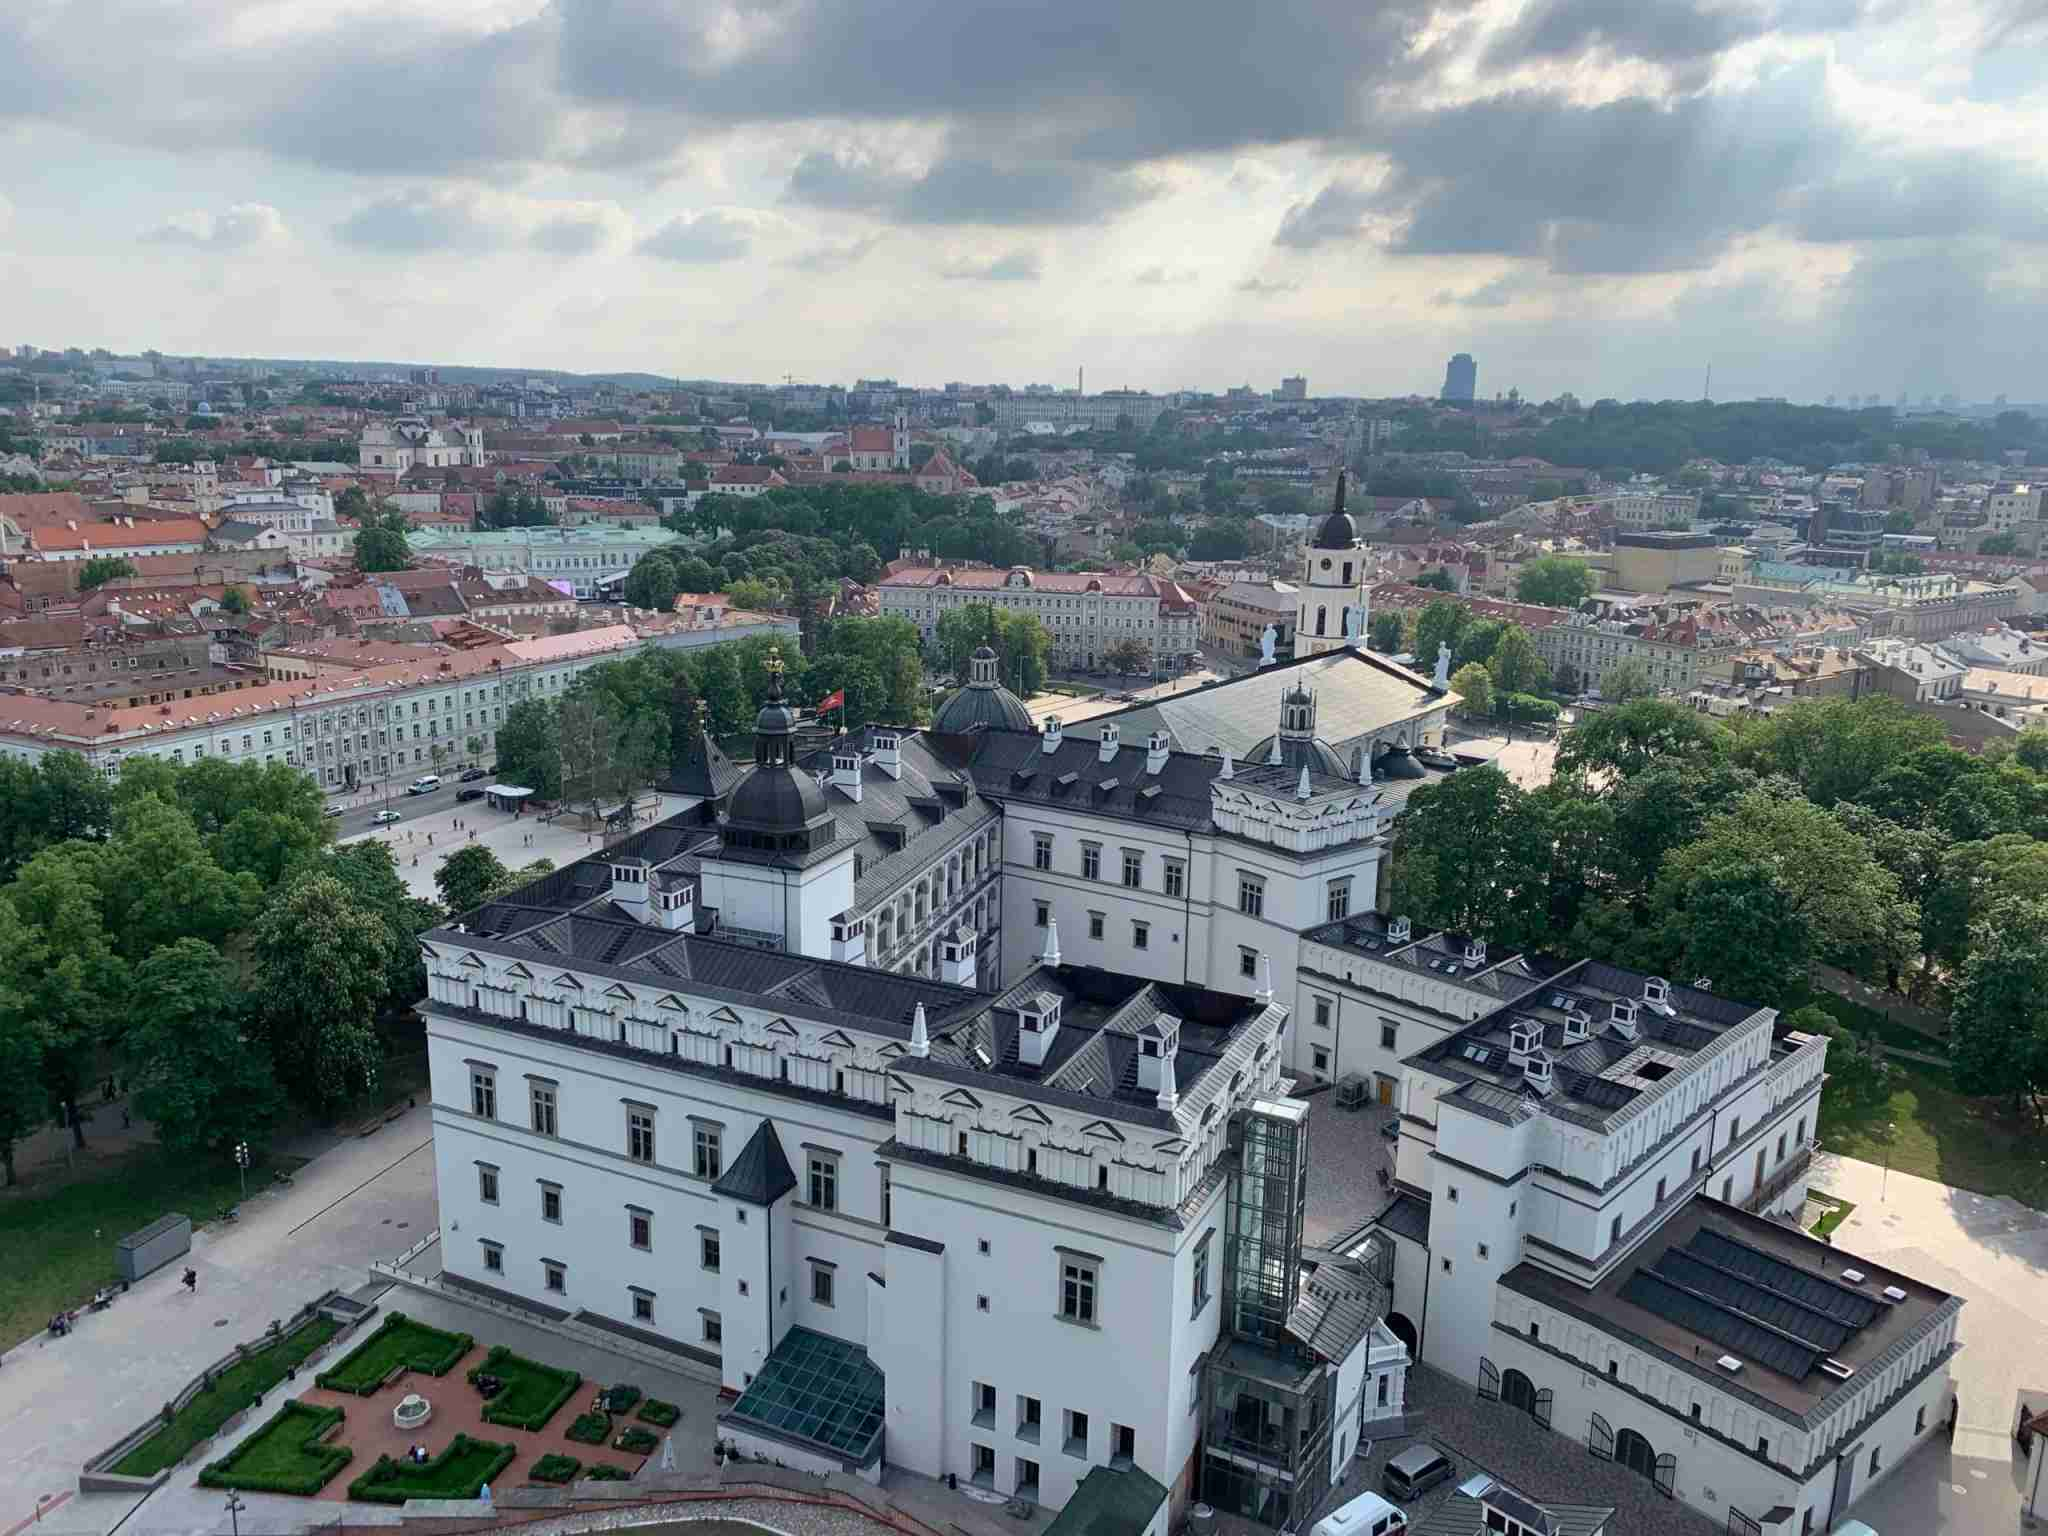 Vilnius, Lithuania May 2019. (Photo by Clint Henderson/The Points Guy)